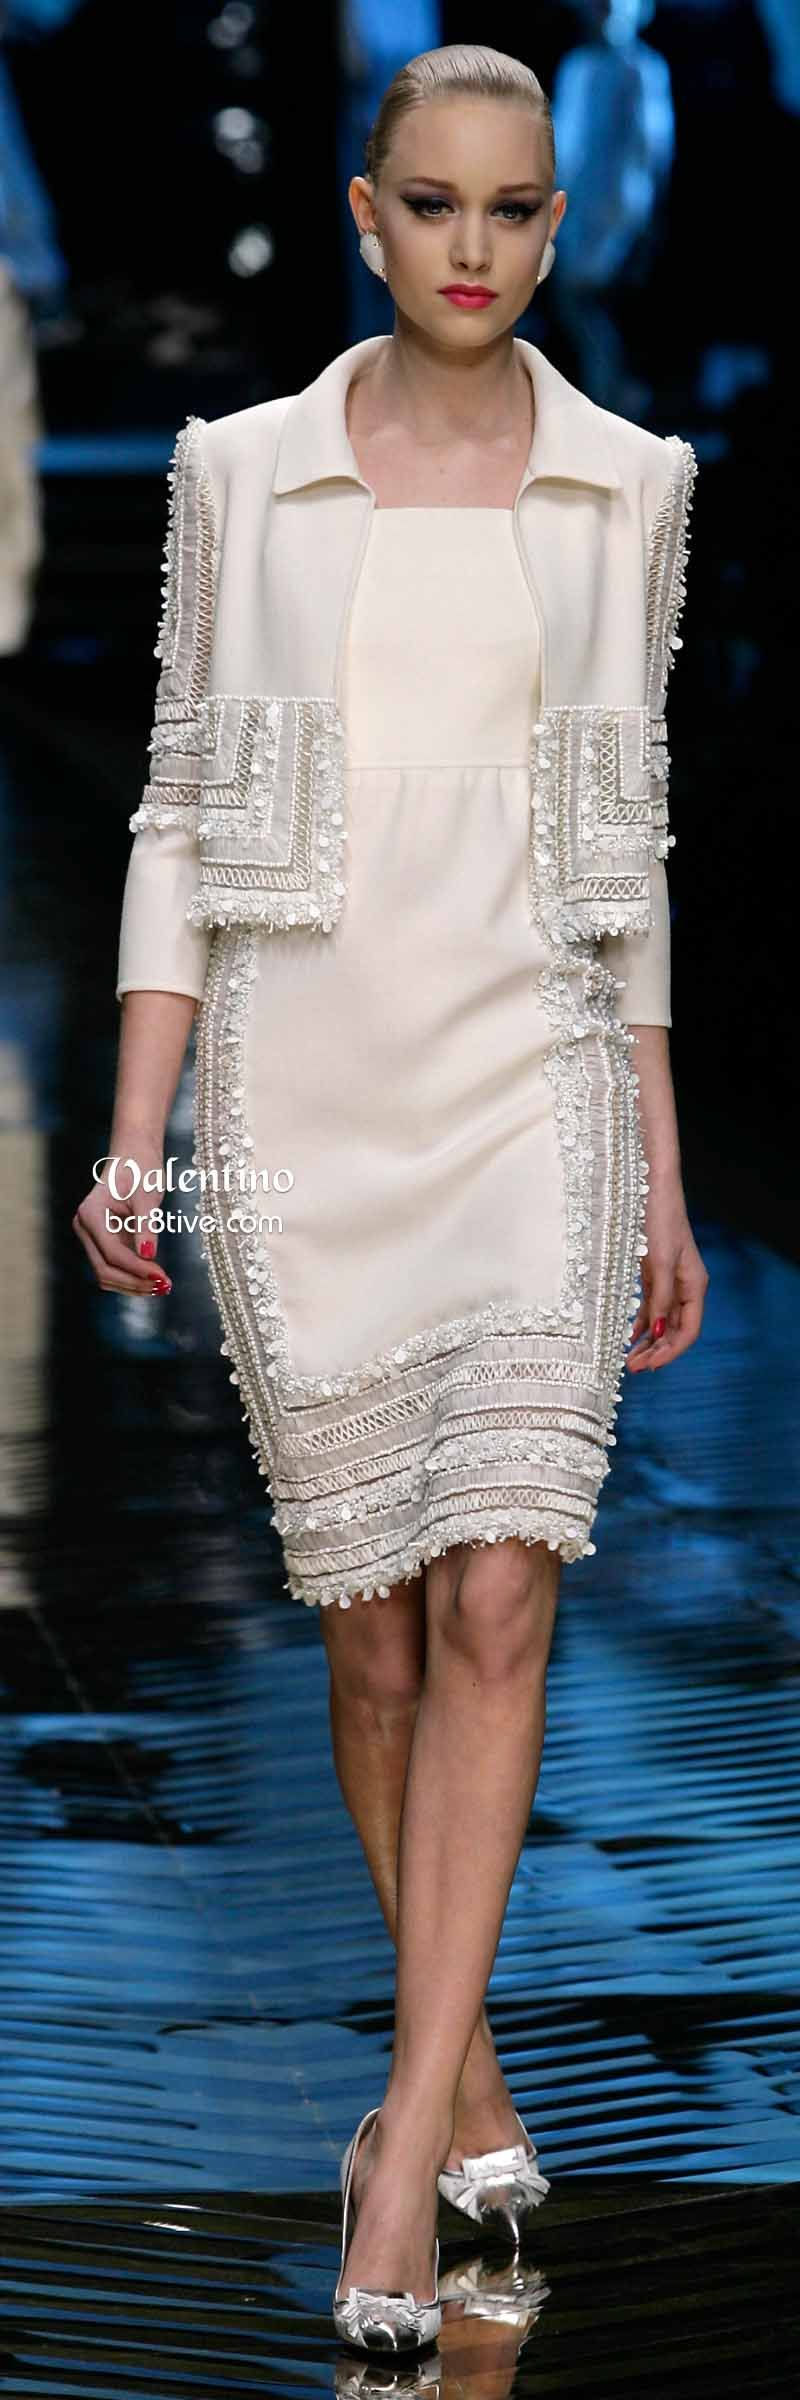 Valentino Formal Dress & Jacket